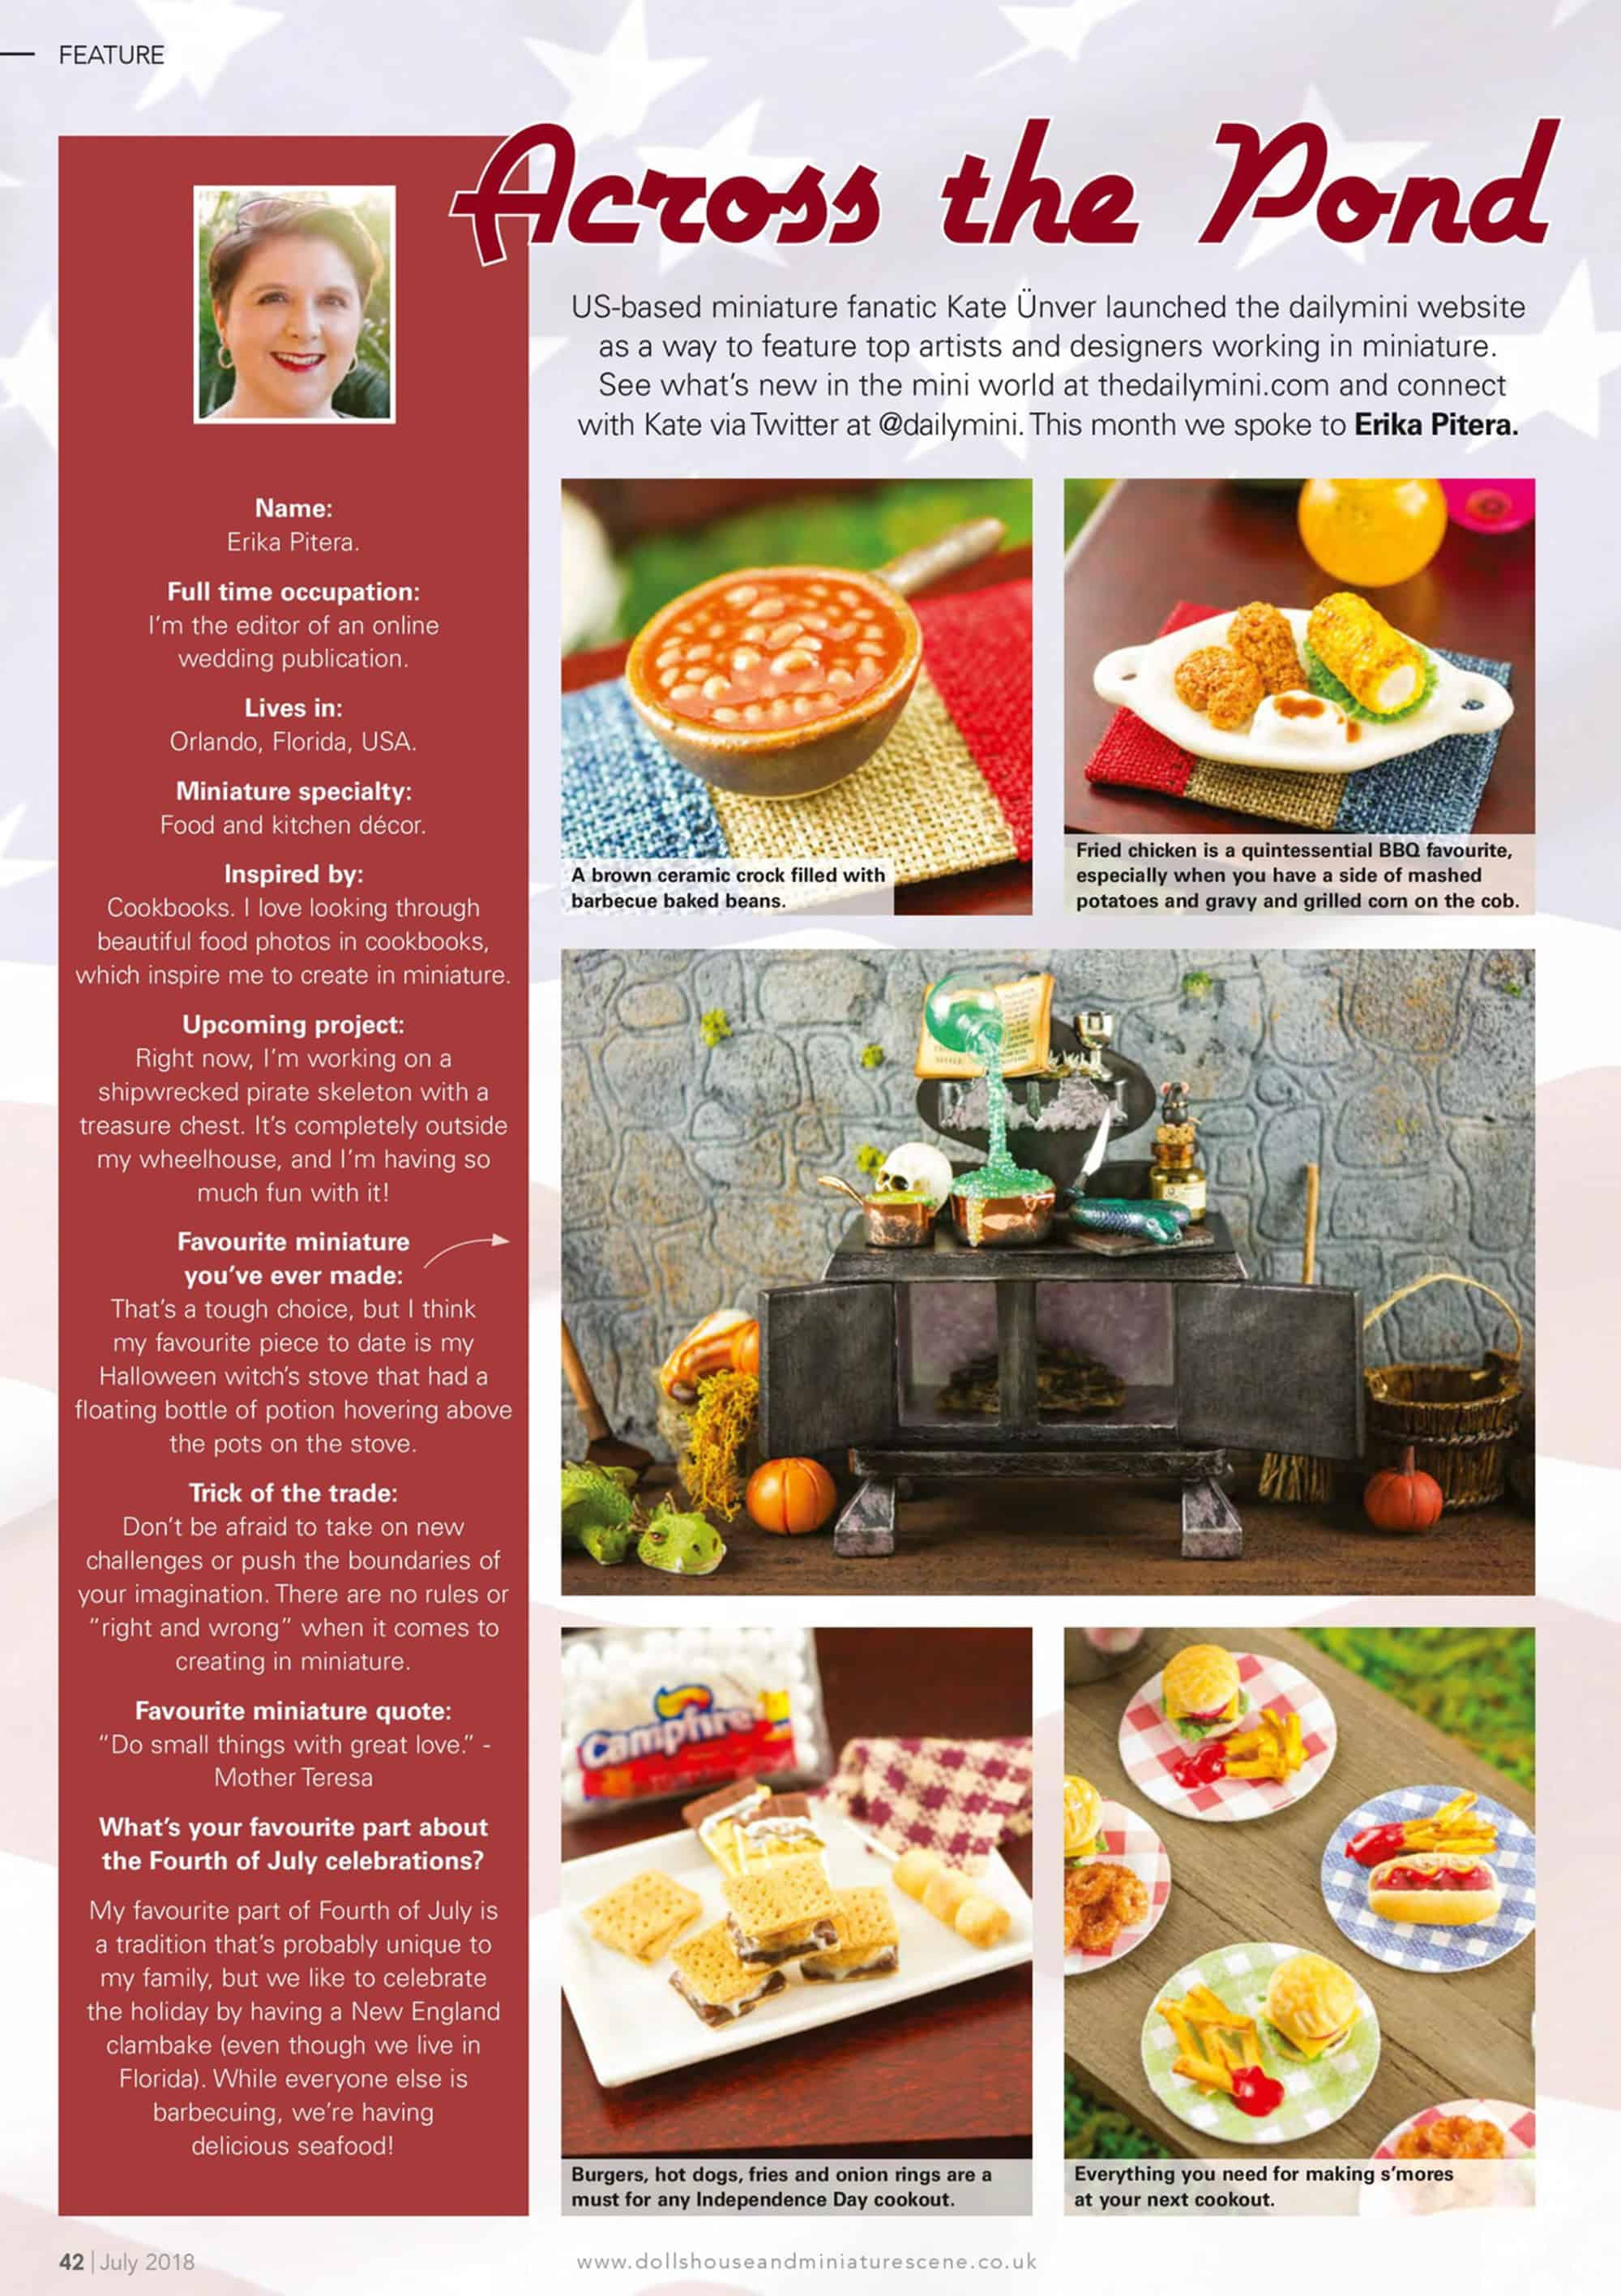 Featured in the July Issue of DollsHouse & Miniature Scene Magazine